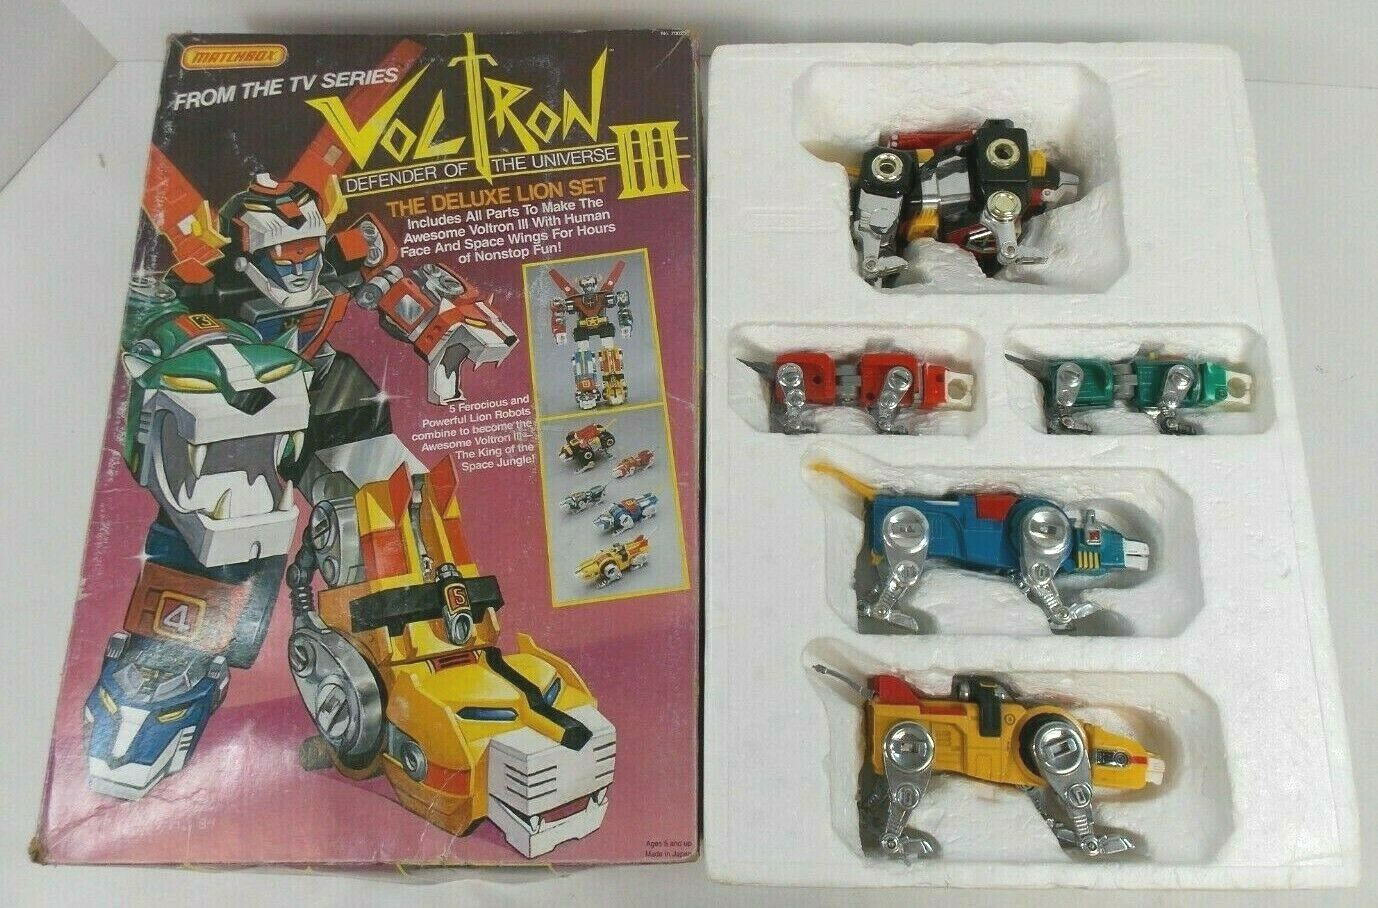 VOLTRON DEFENDER OF THE UNIVERSE DELUXE LION SET DIE CAST 1984 MATCHBOX